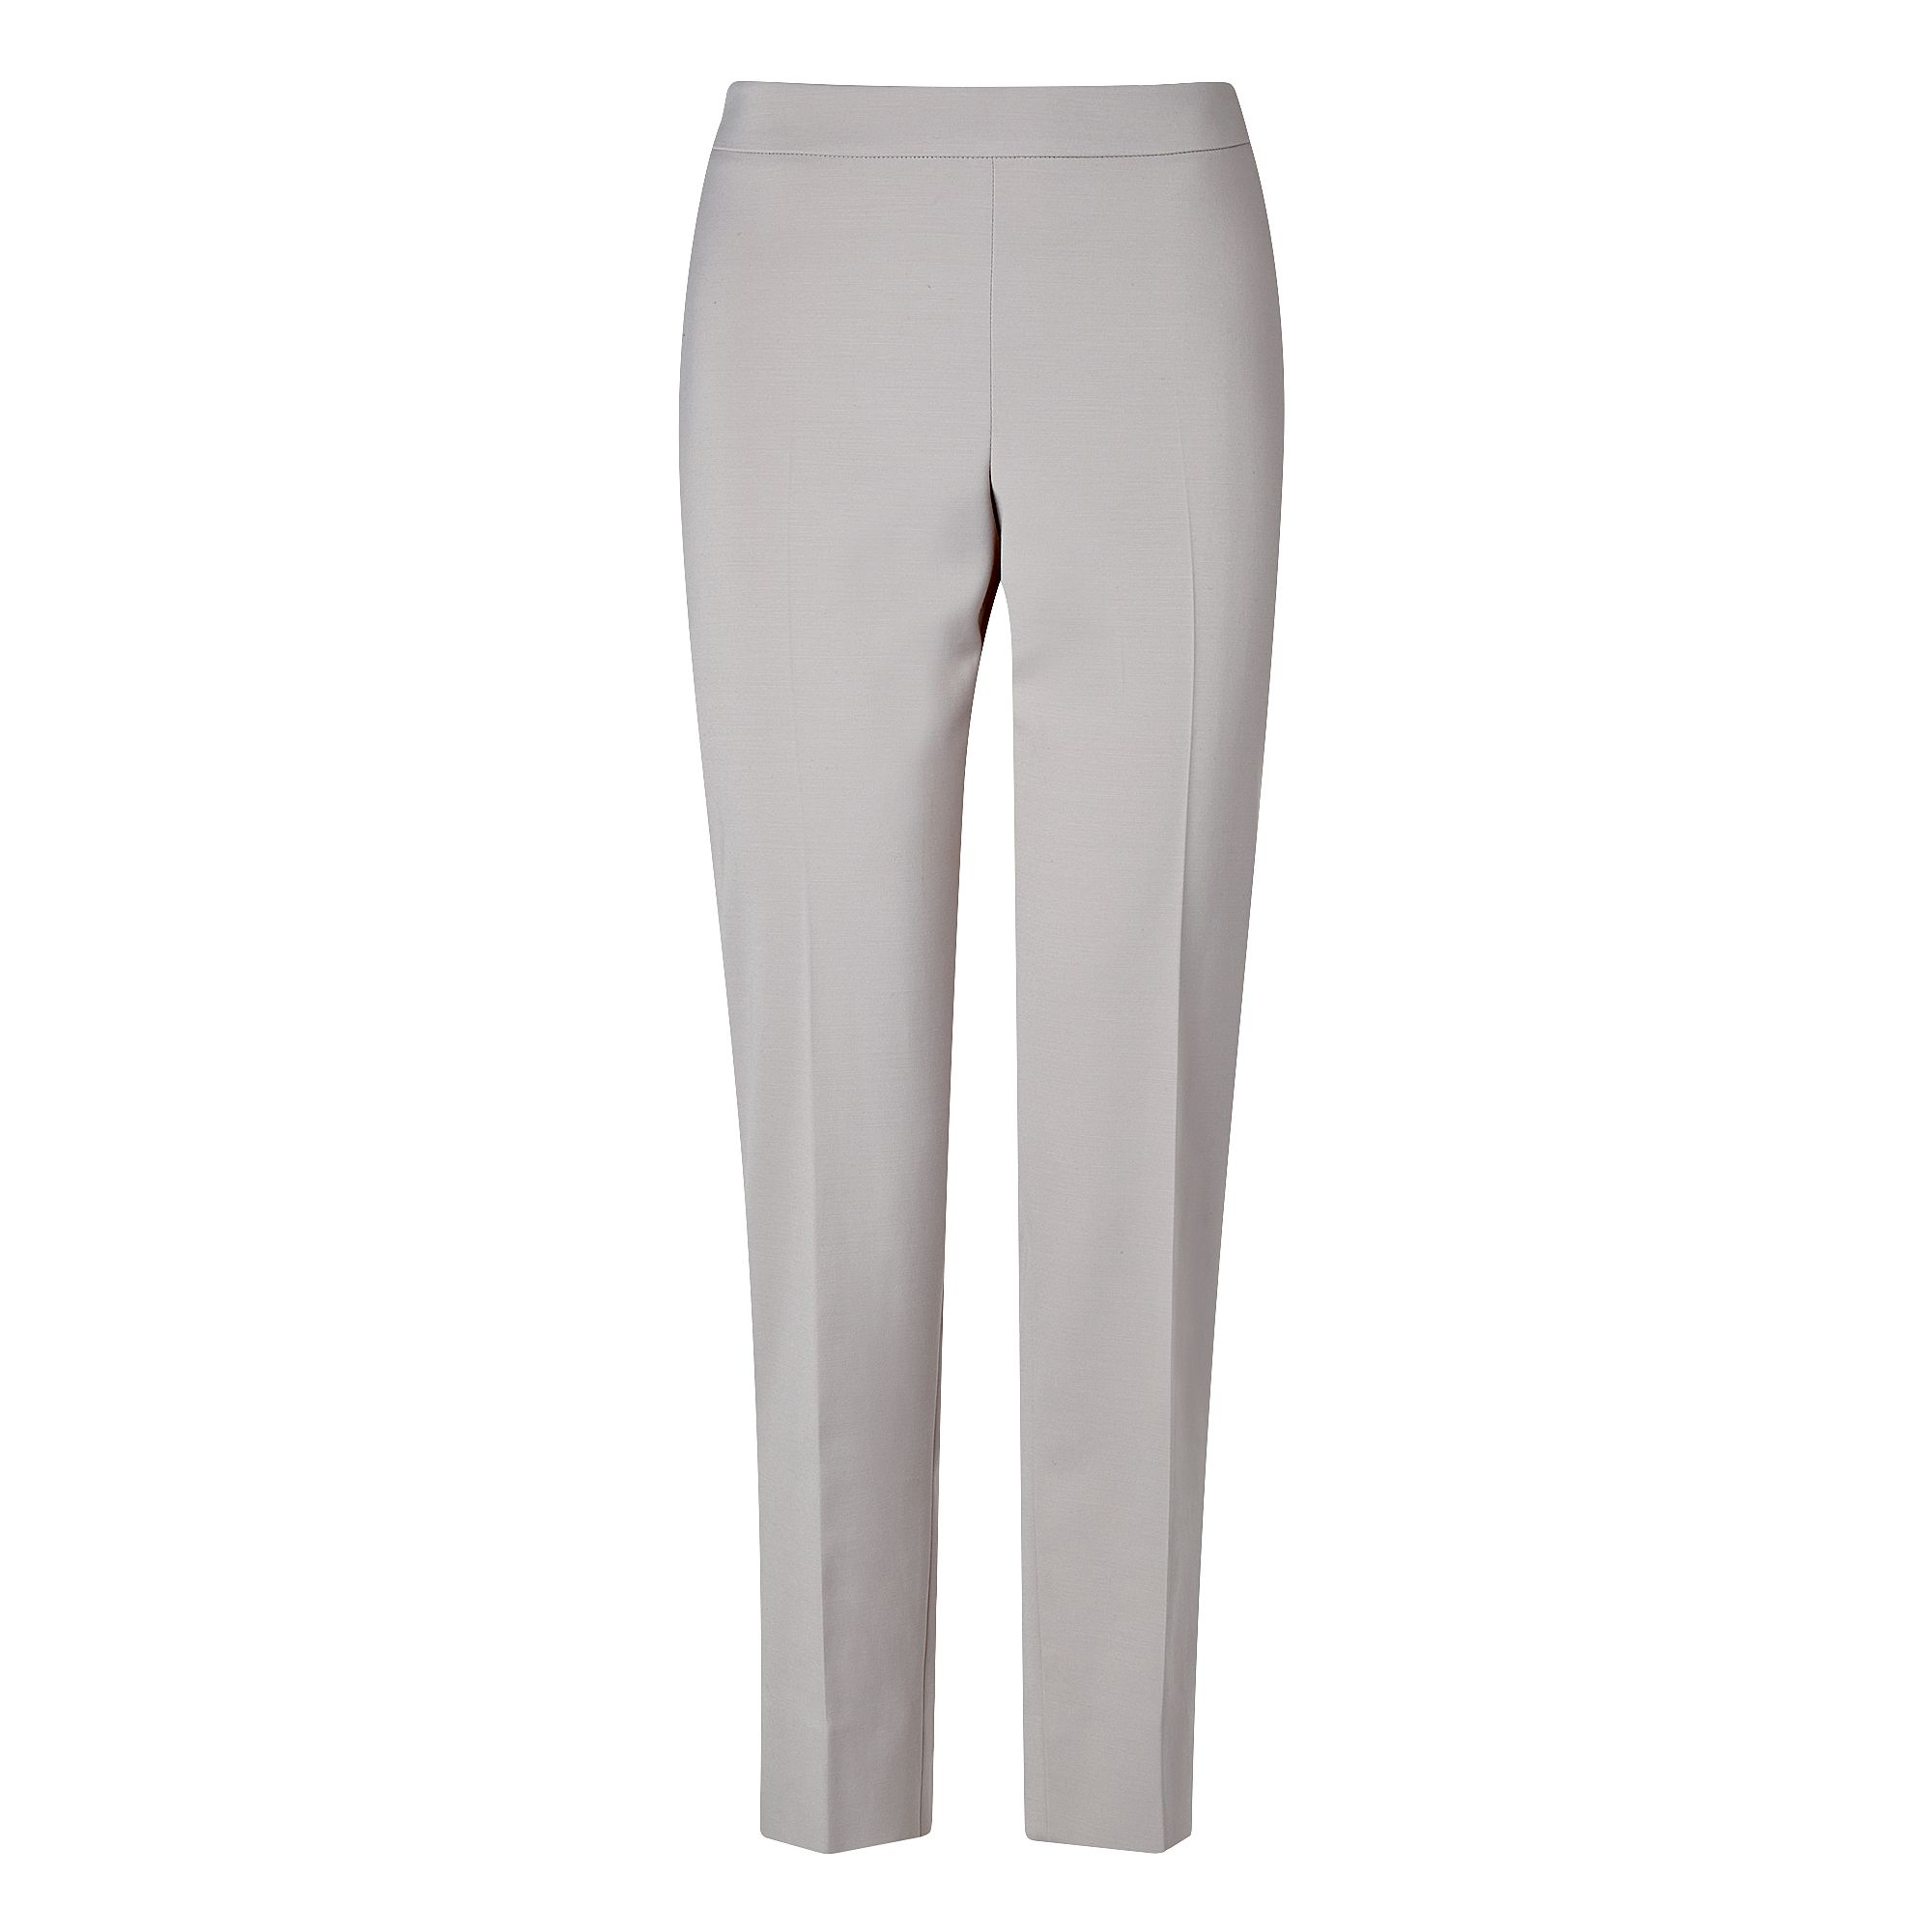 Moscow Plain Tapered Leg Trouser